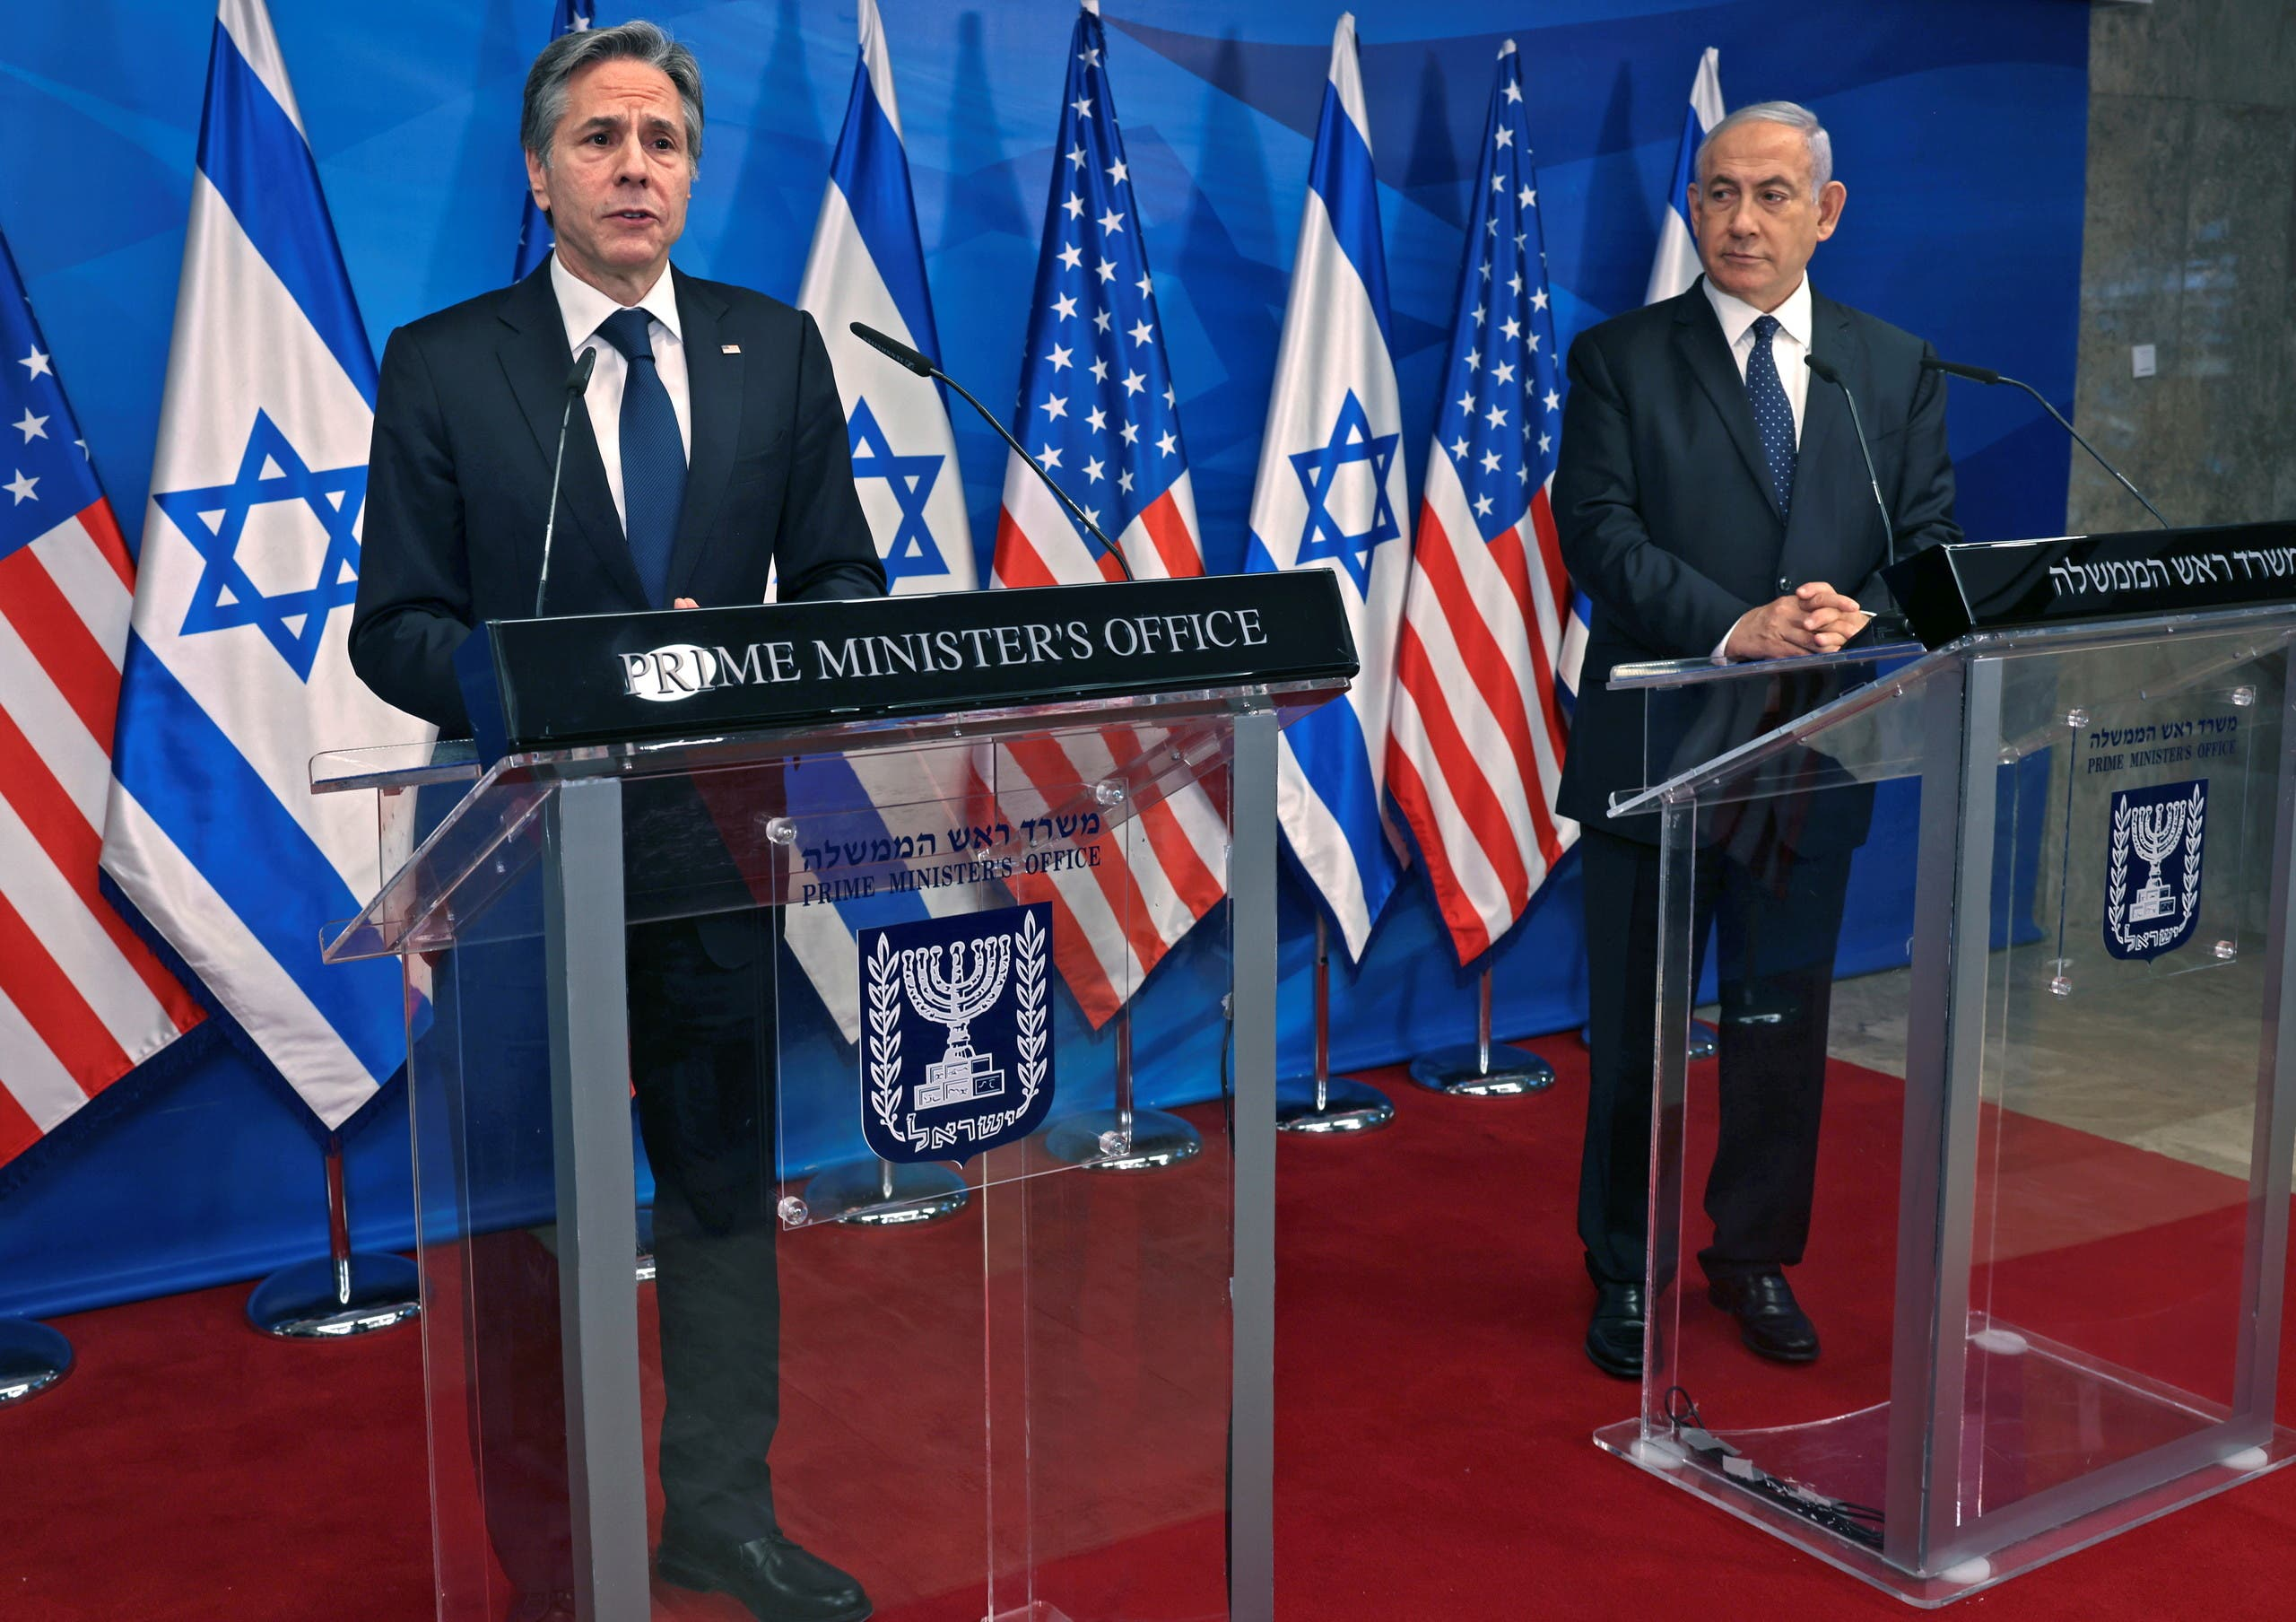 Israeli Prime Minister Netanyahu and US Secretary of State Blinken hold a joint news conference in Jerusalem. (Reuters)